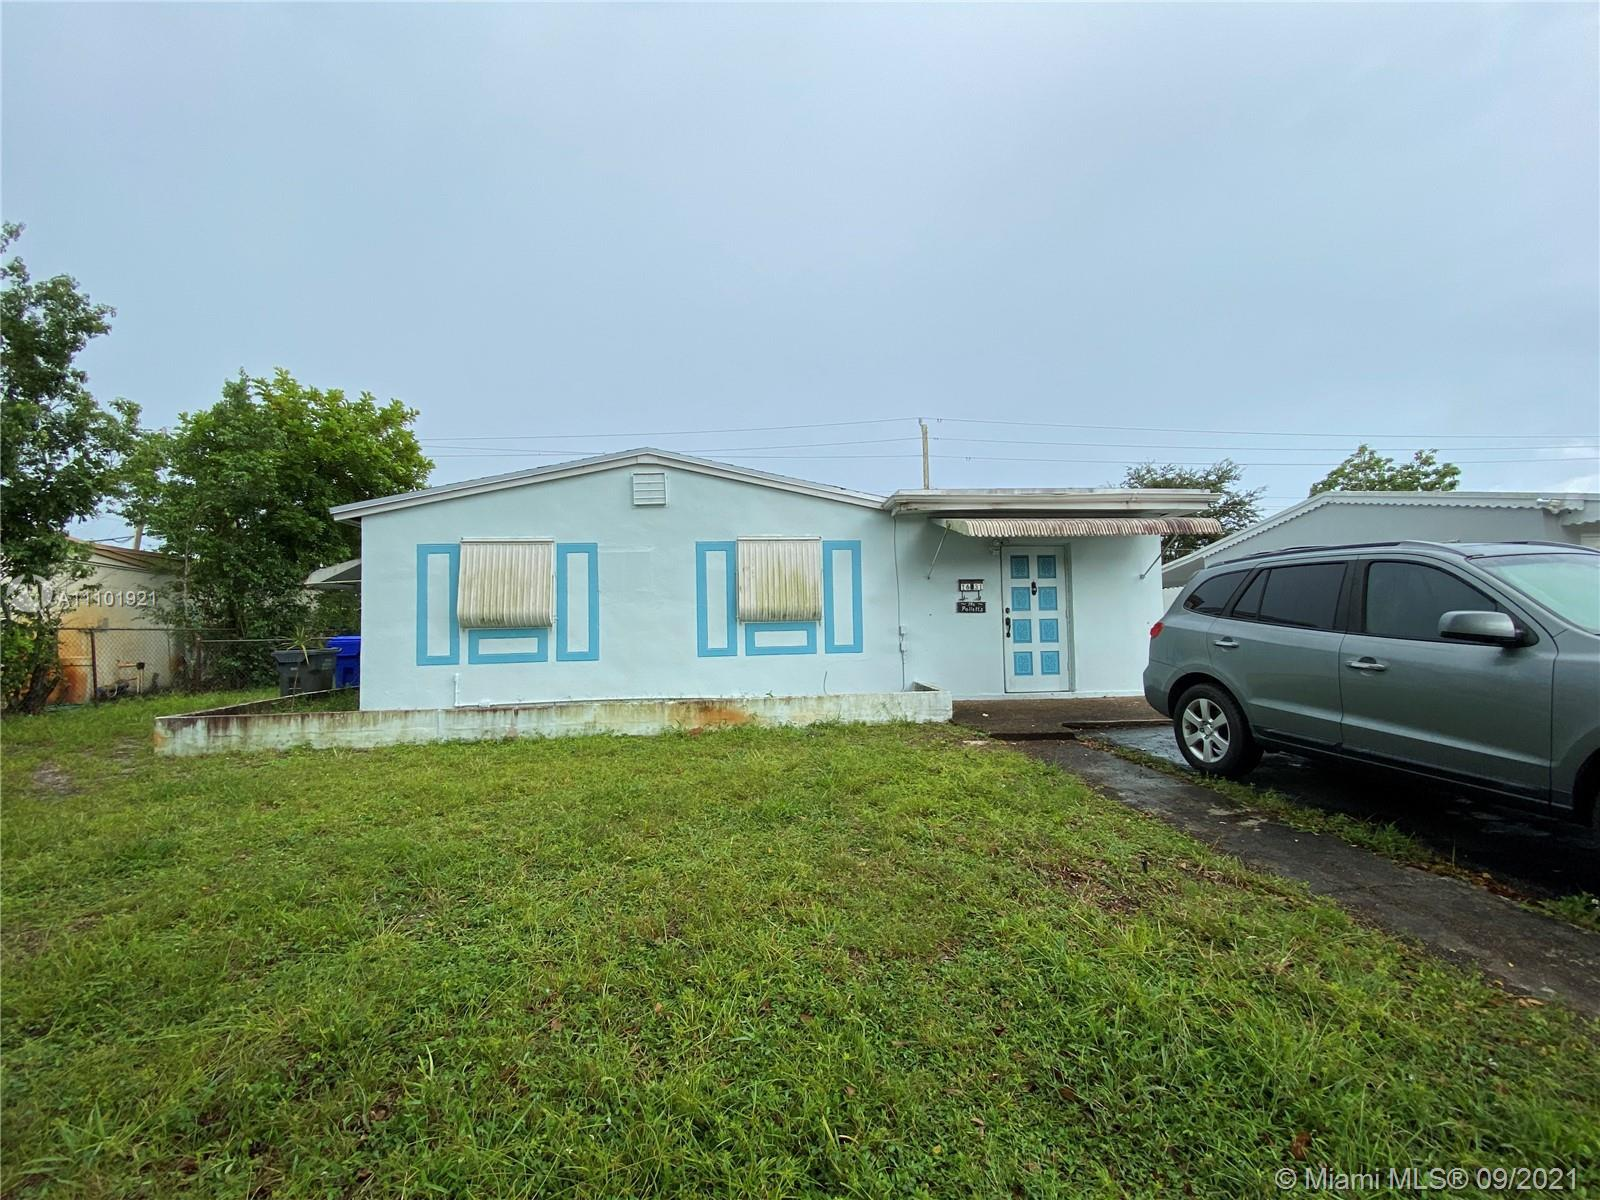 Estate Sale! Handyman special. 3 Bed/ 1 Bath. Great location, large lot with spacious backyard. Easy